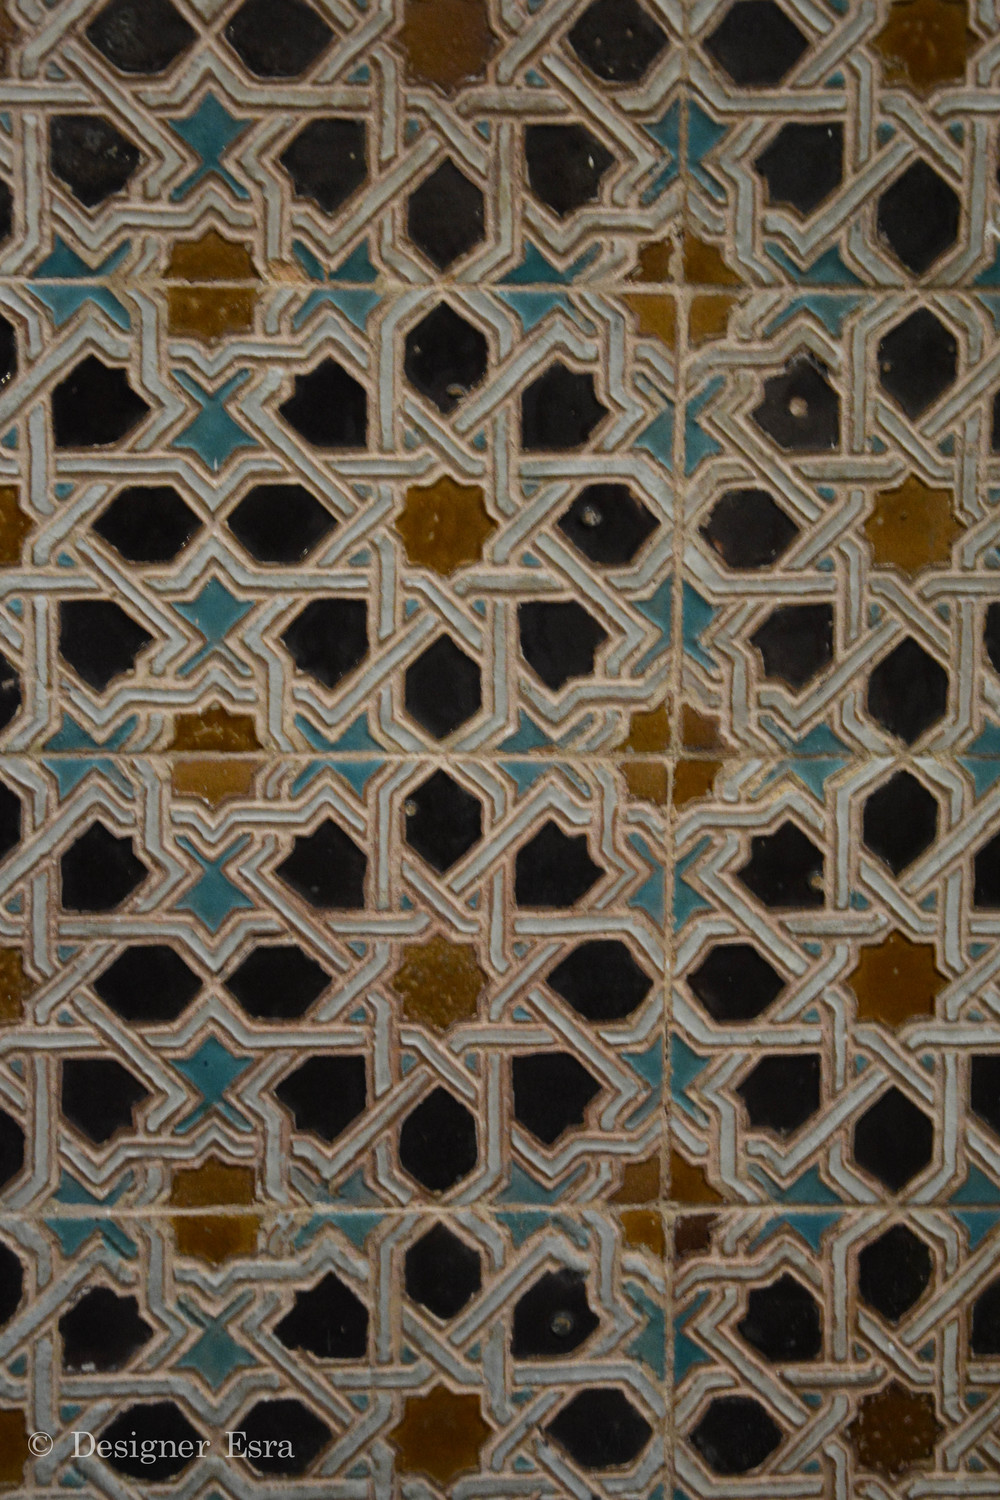 Islamic Pattern in Granada